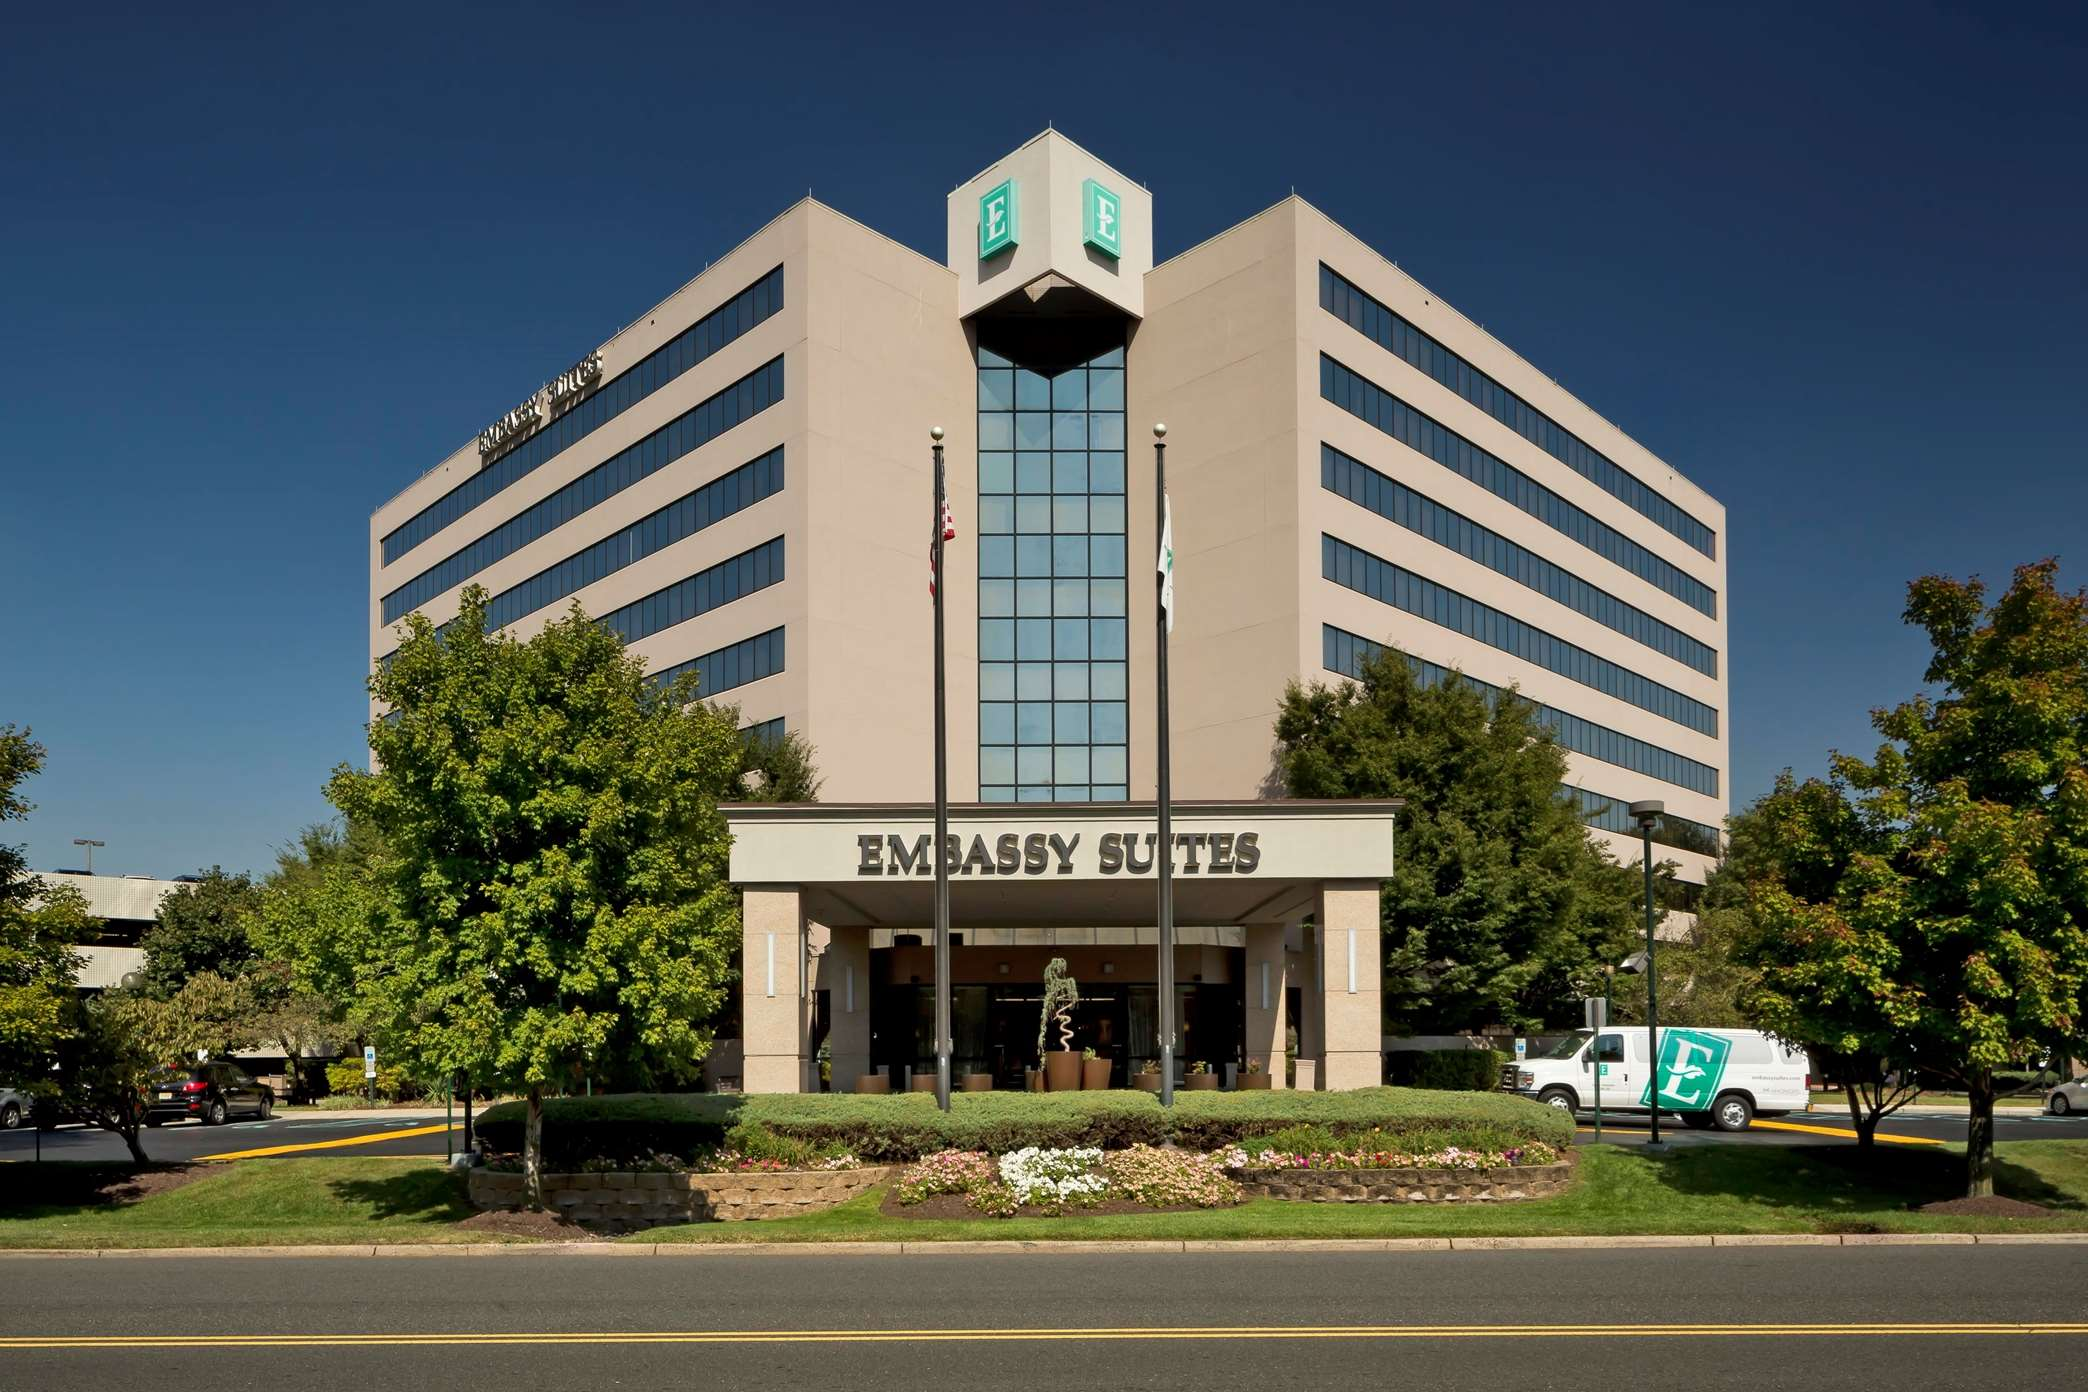 Embassy Suites by Hilton Secaucus Meadowlands image 0